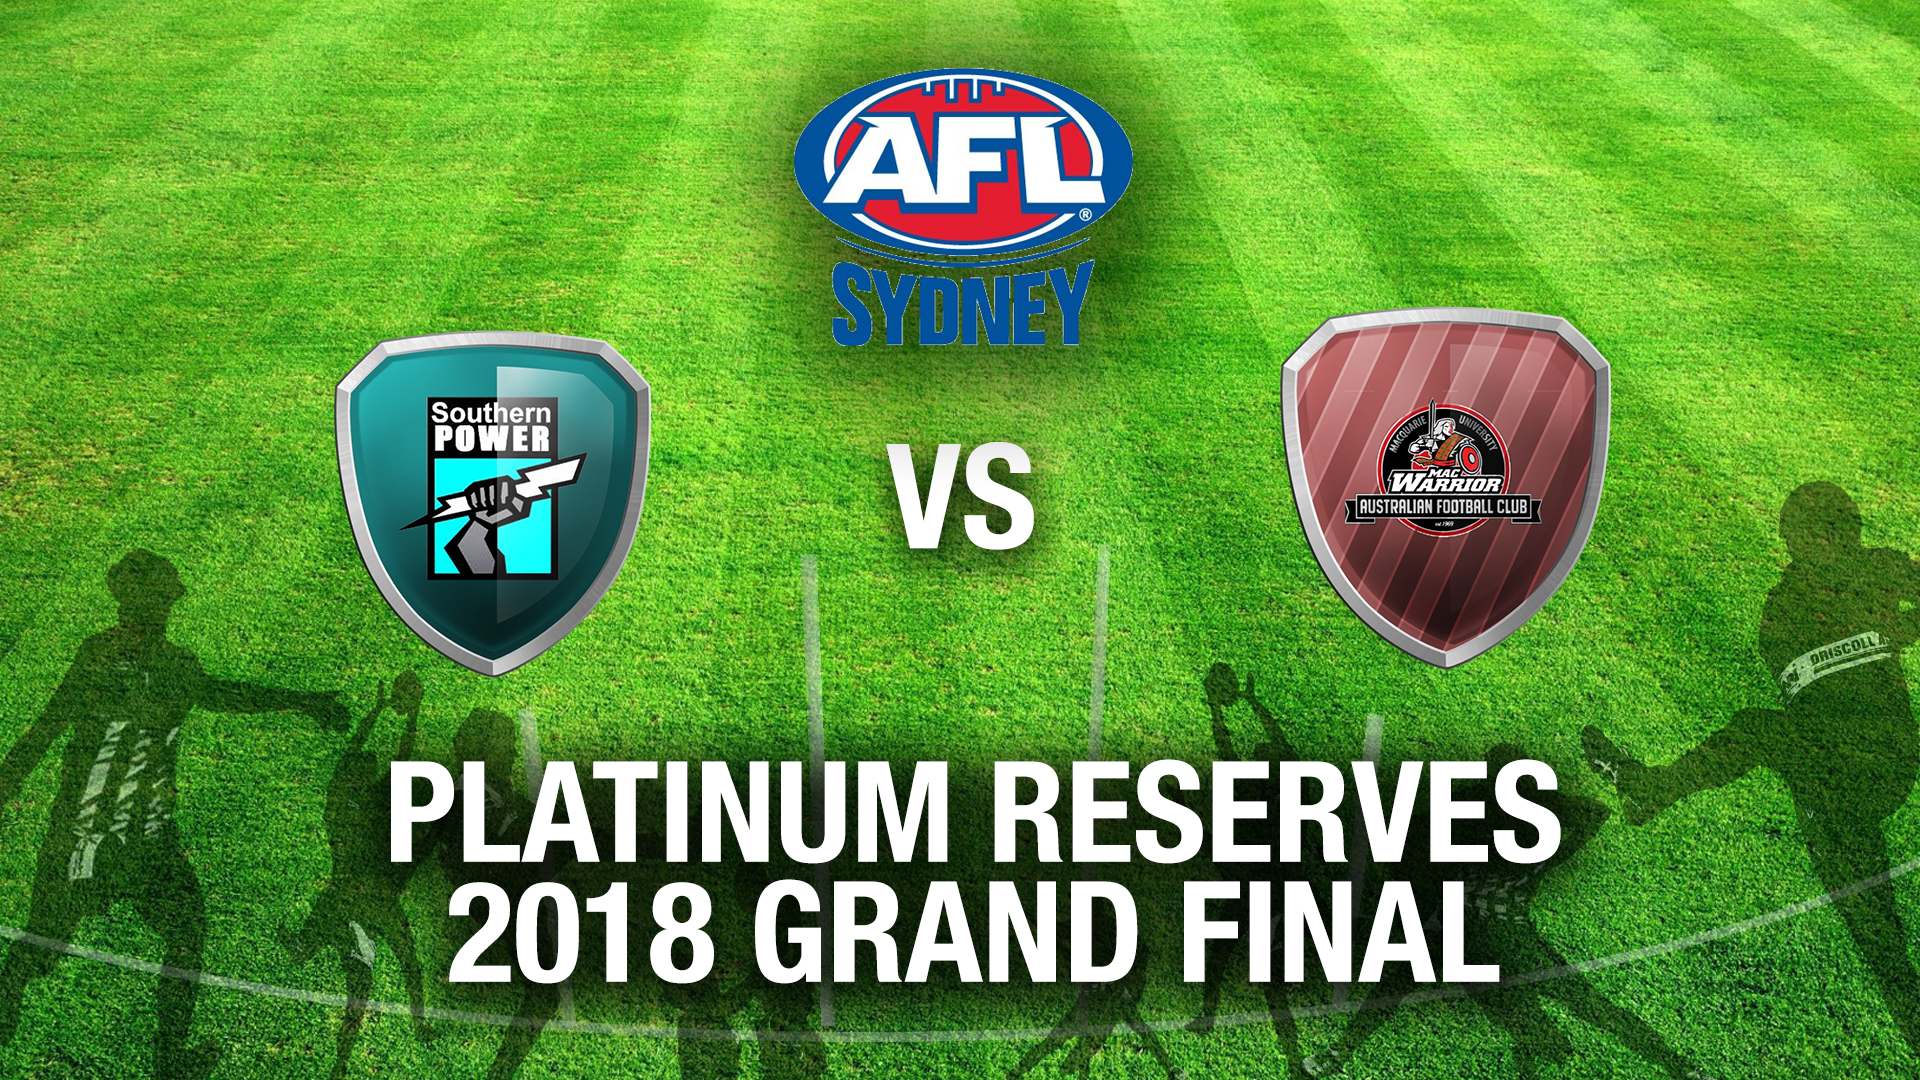 Platinum Reserves - Grand Final - Southern Power v Macquarie University